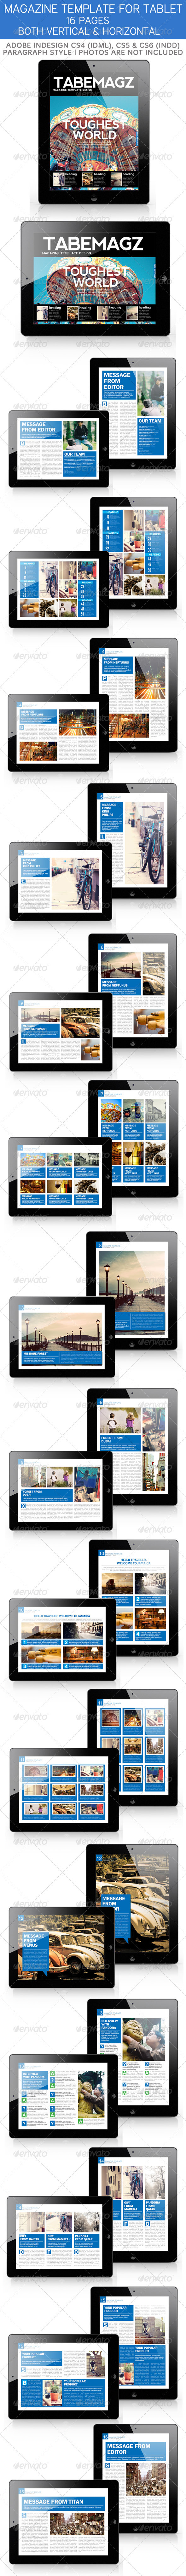 GraphicRiver Tabemagz Magazine Template for Tablet 3336476